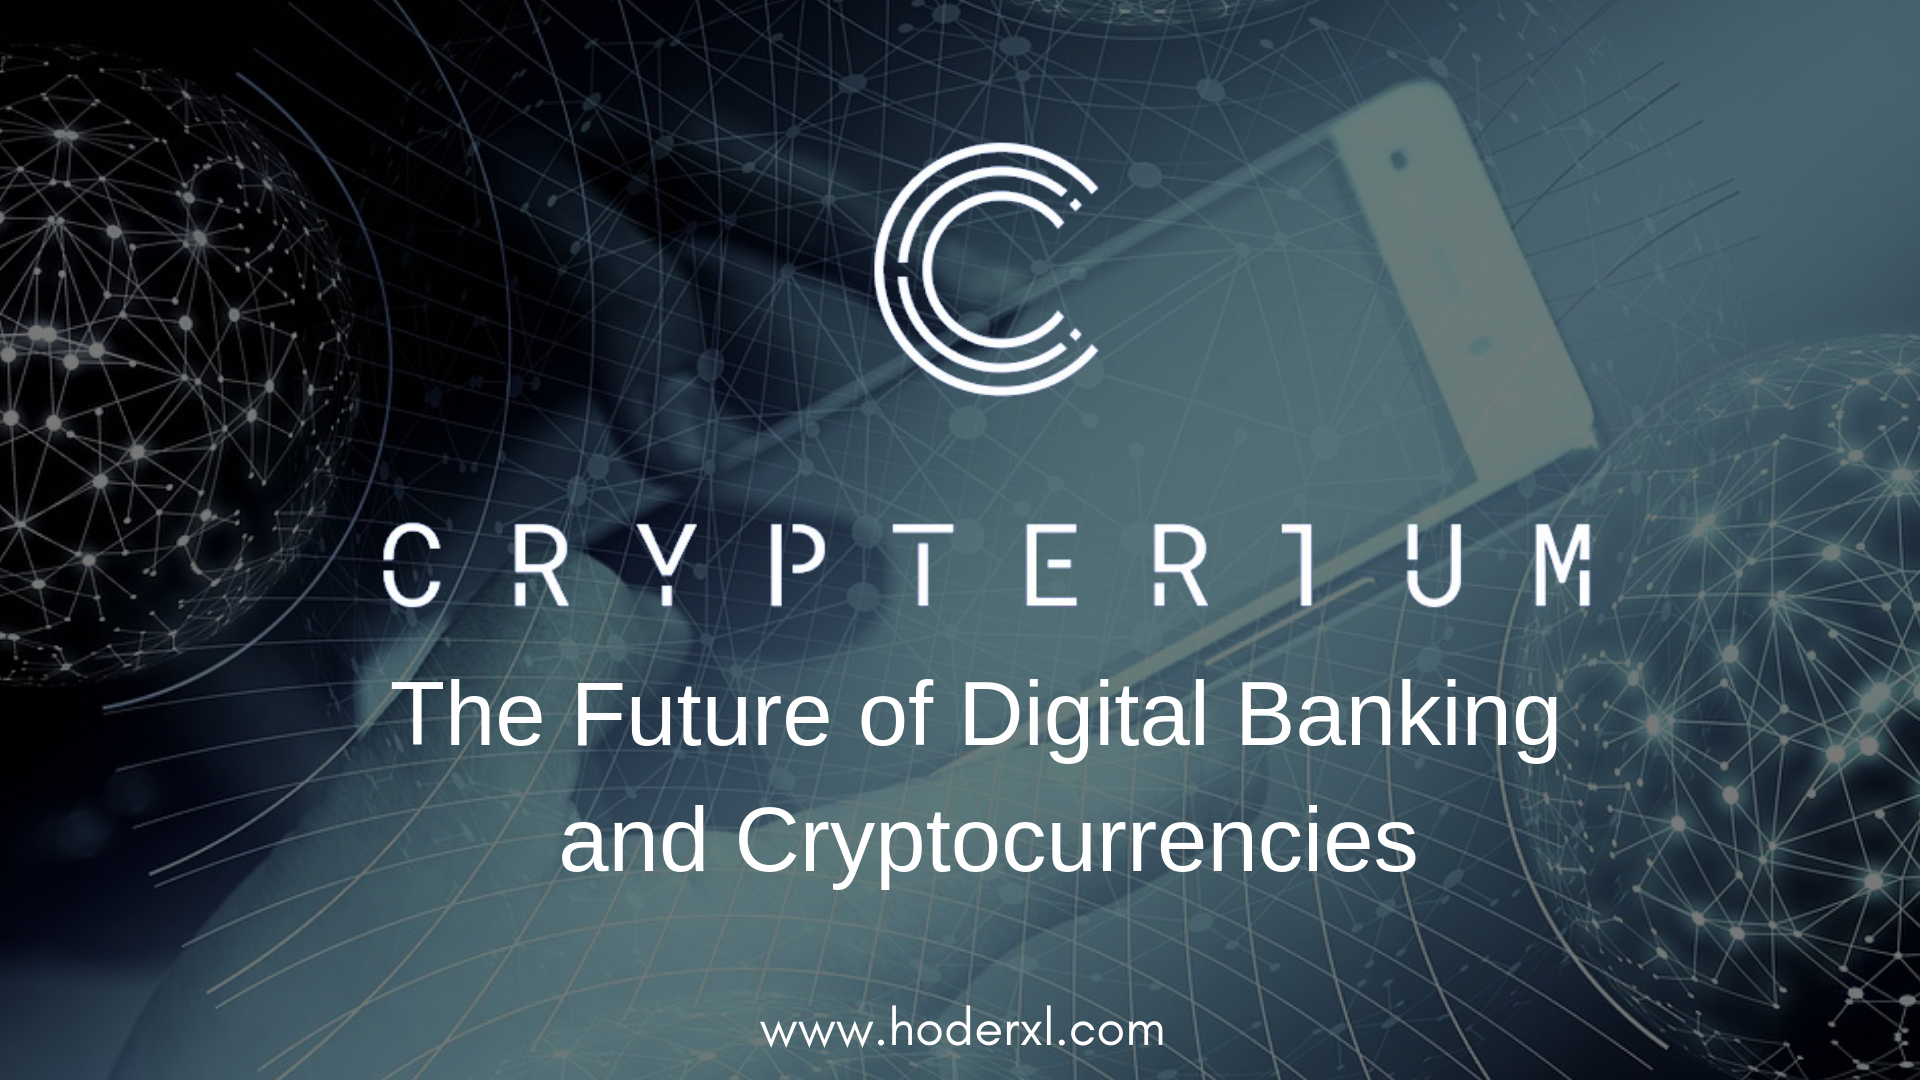 The Future of Digital Banking and Cryptocurrencies